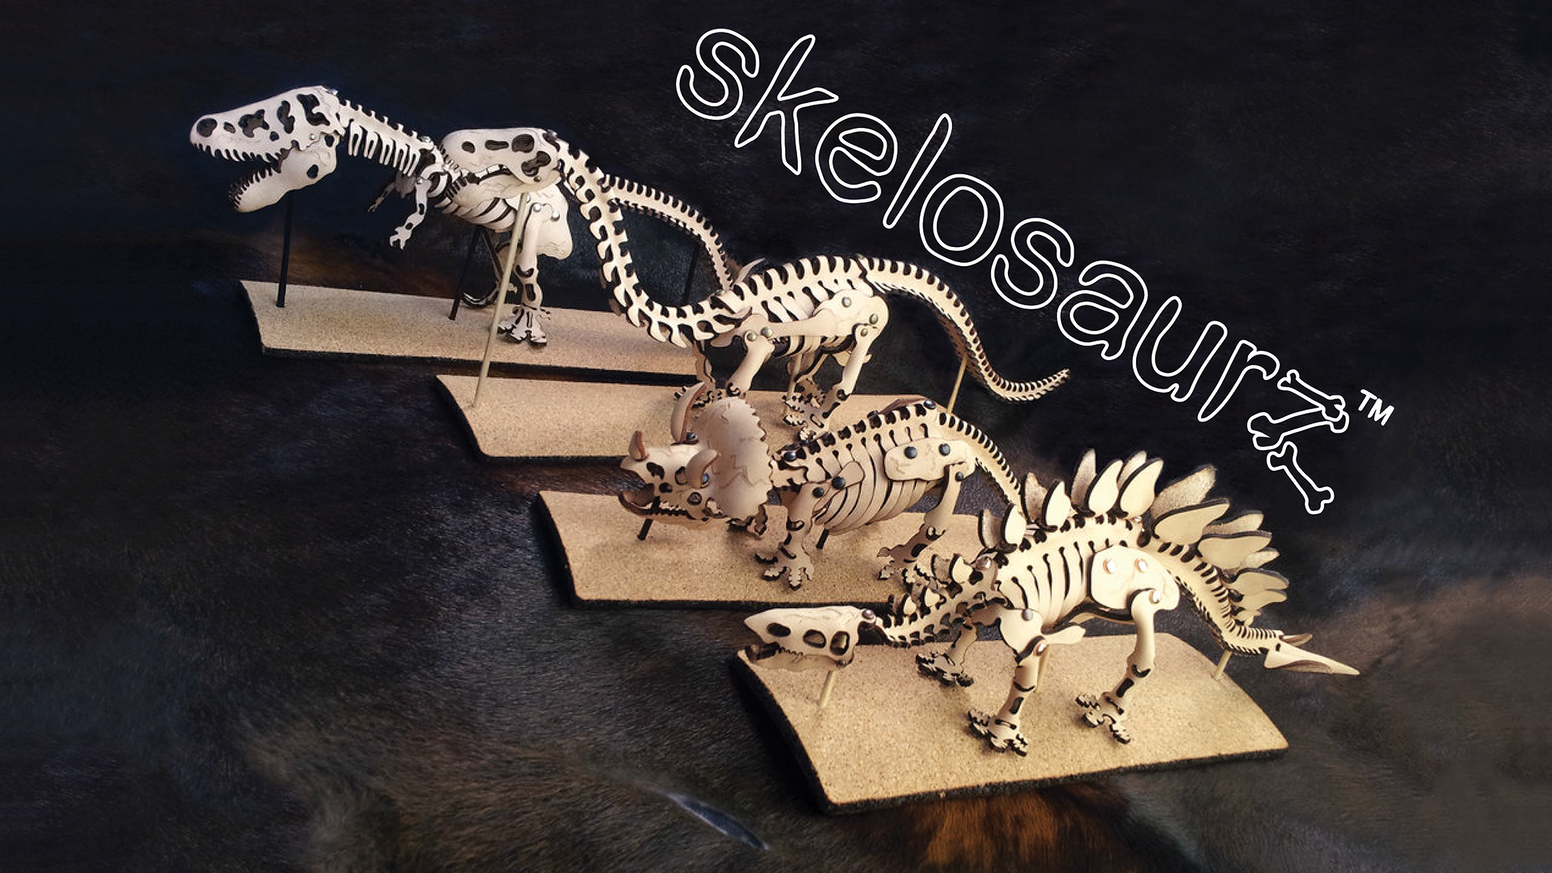 Reconstruct the past in real leather with Skelosaurz! The dinosaur skeleton kits brought back to life with primal skills & water!